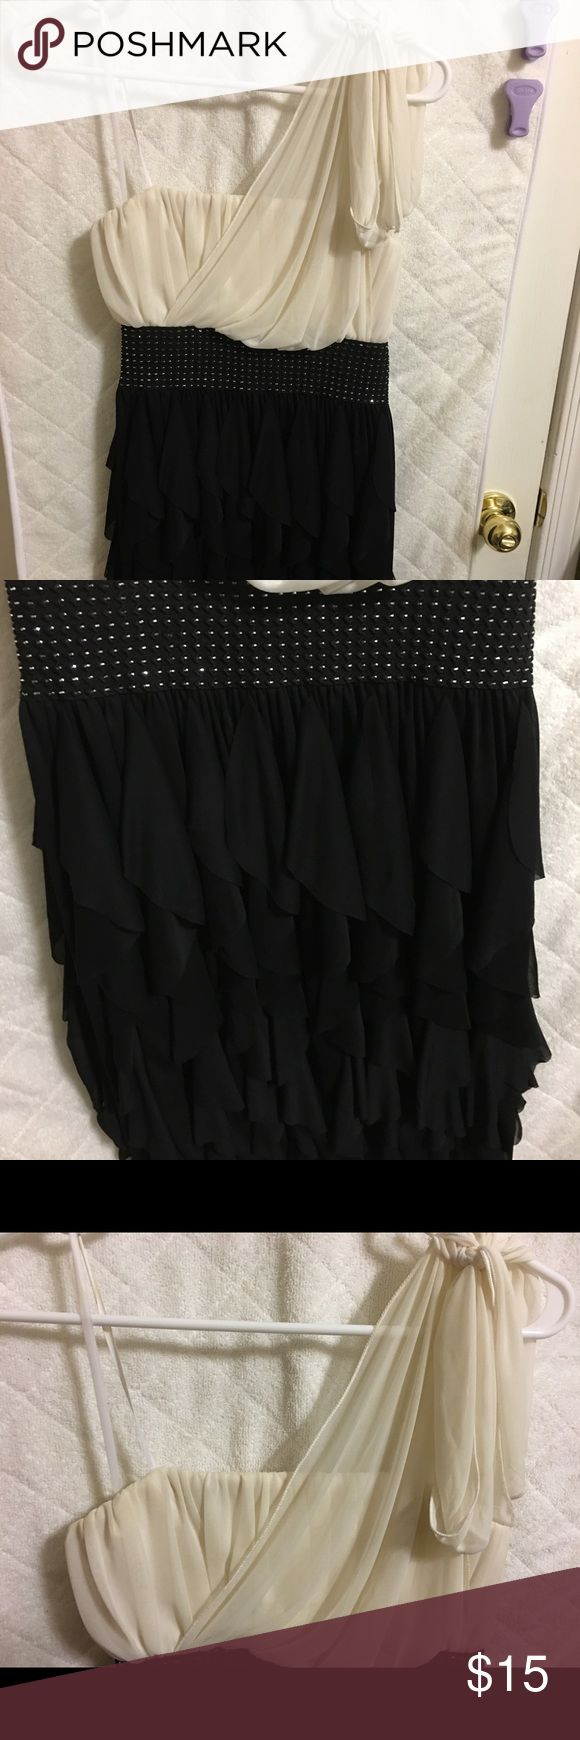 Black and White Homecoming Dress Black frilled skirt with a sparkly band around the waist and a pretty white flowing top with one shoulder tie. Also has elastic grip around the top inside to prevent slippage. Worn once to a homecoming dance. Roberta Dresses Prom